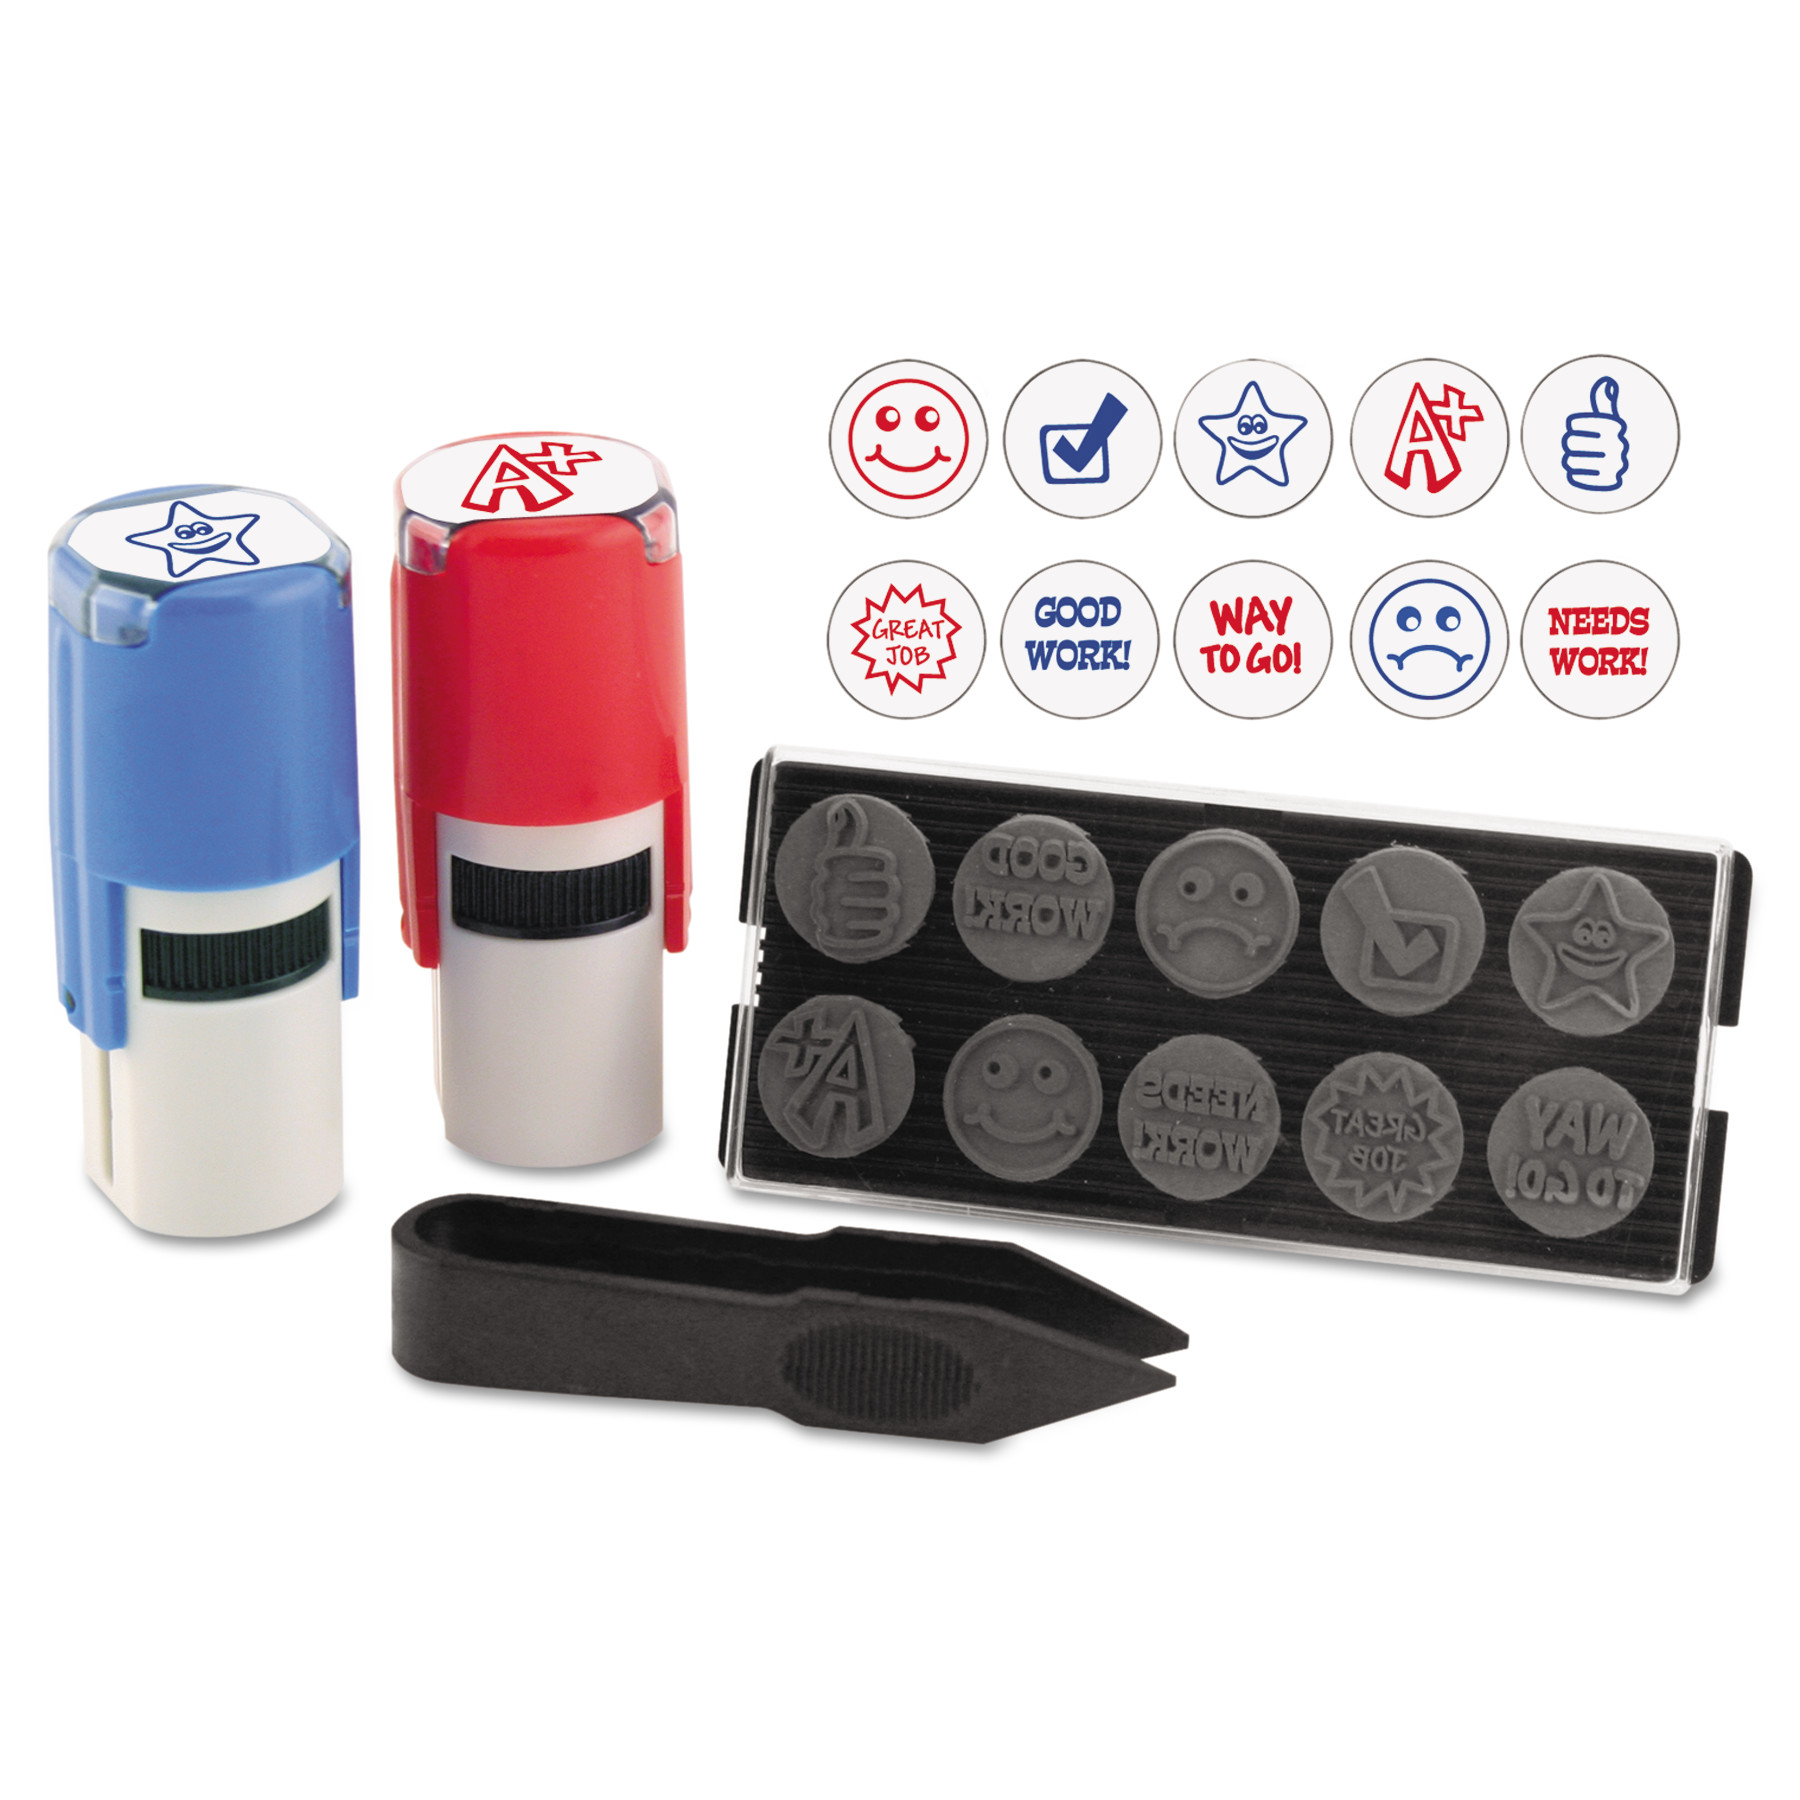 "Stamp-Ever Stamp-Ever Stamp, Self-Inking with 10 Dies, 5/8"", Blue/Red"